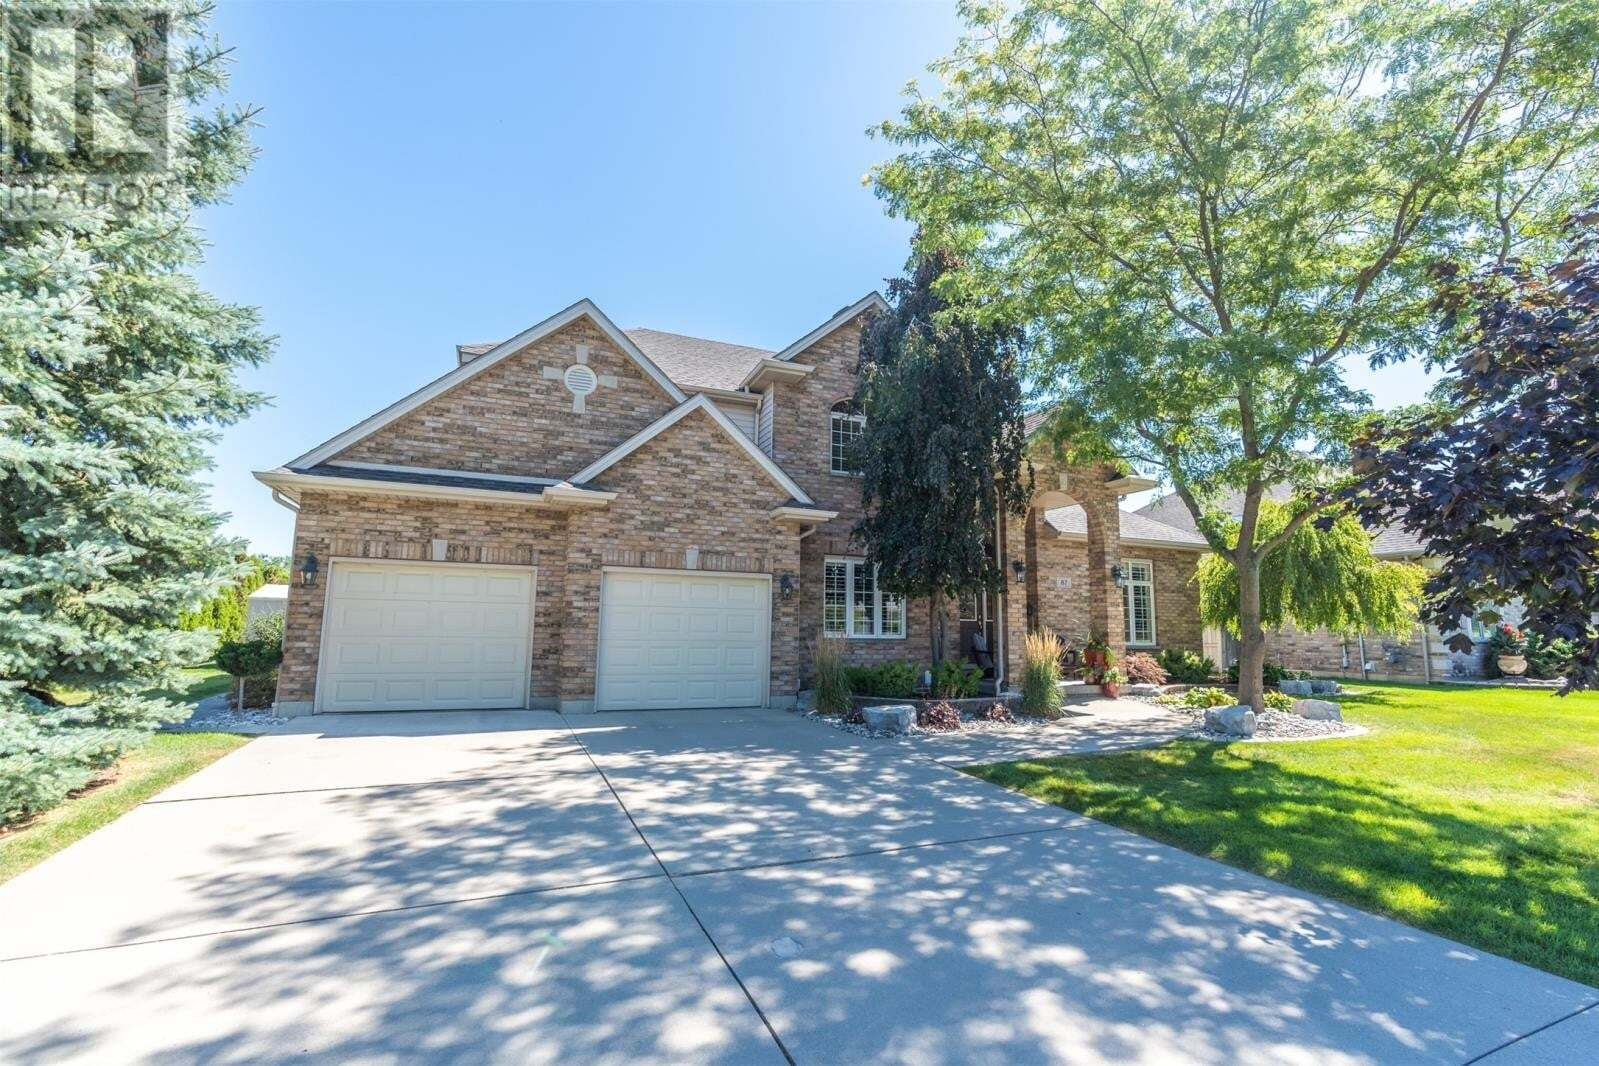 House for sale at 87 Braemar Blvd Chatham Ontario - MLS: 20009553